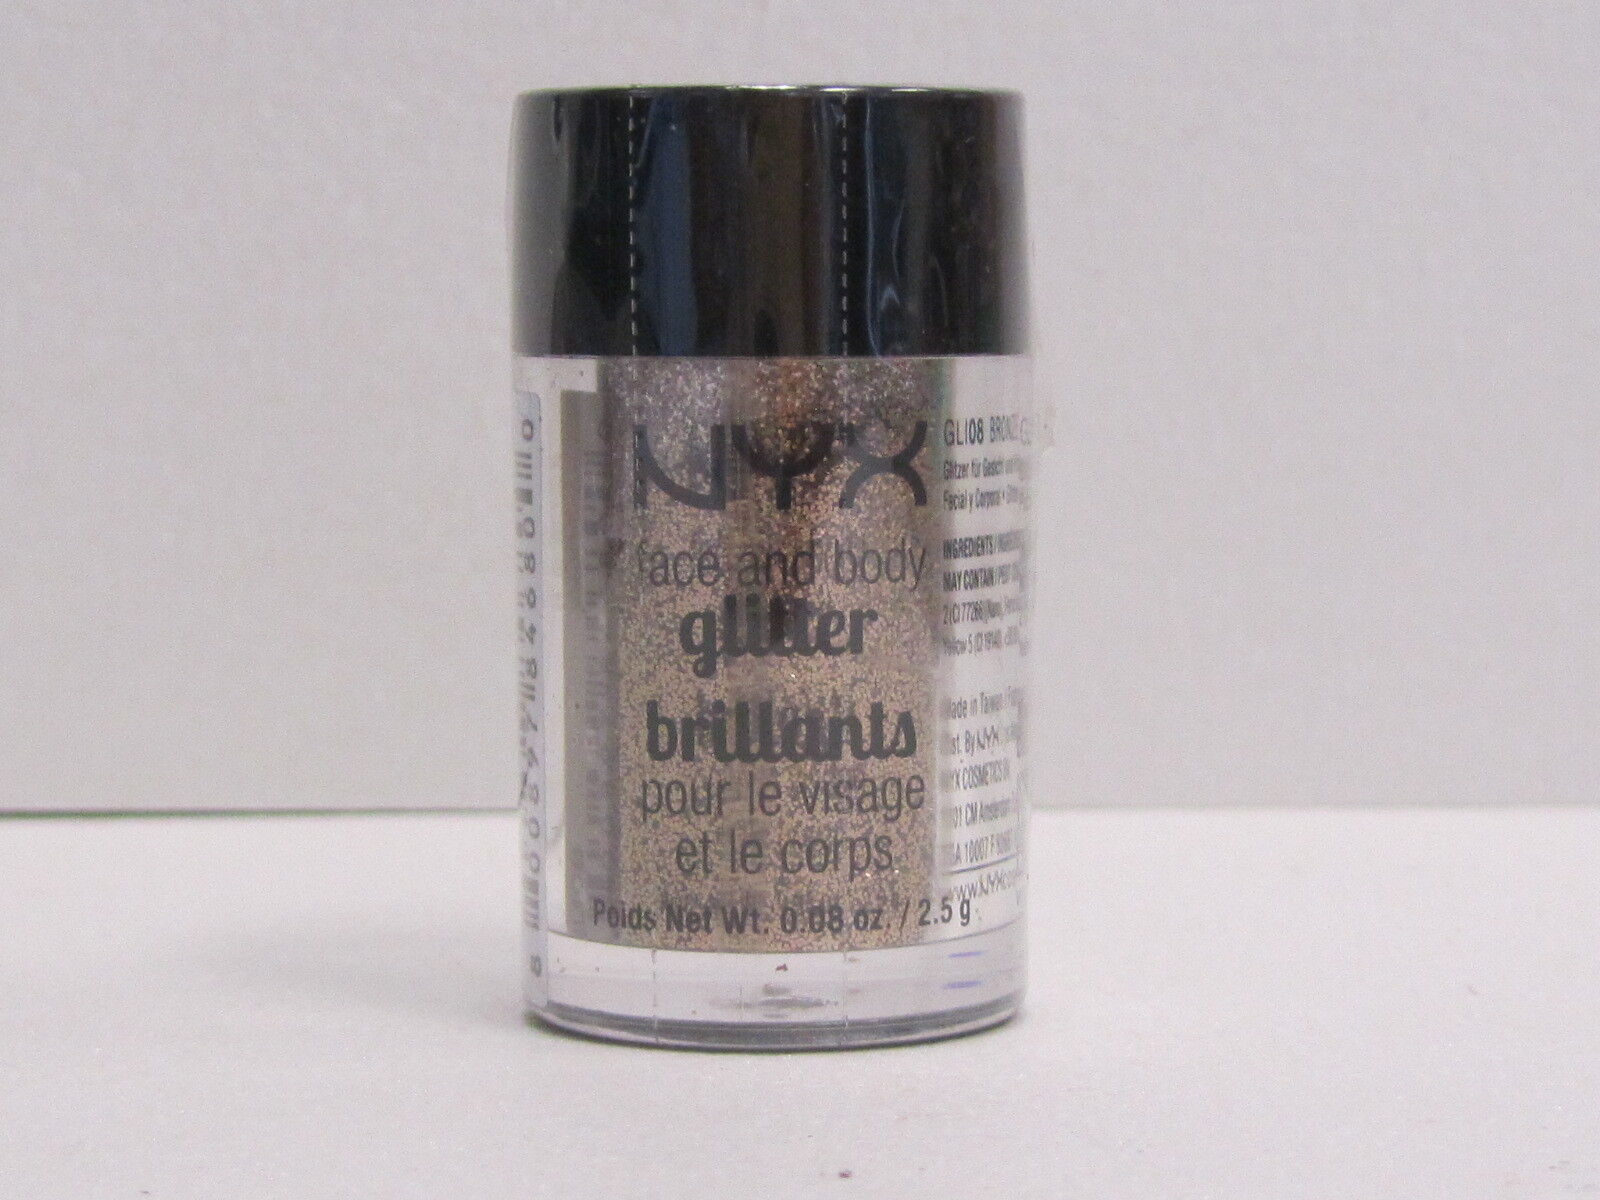 NYX Face and Body Glitter color GLI08 Bronze 0.08 oz Brand New With Sealed